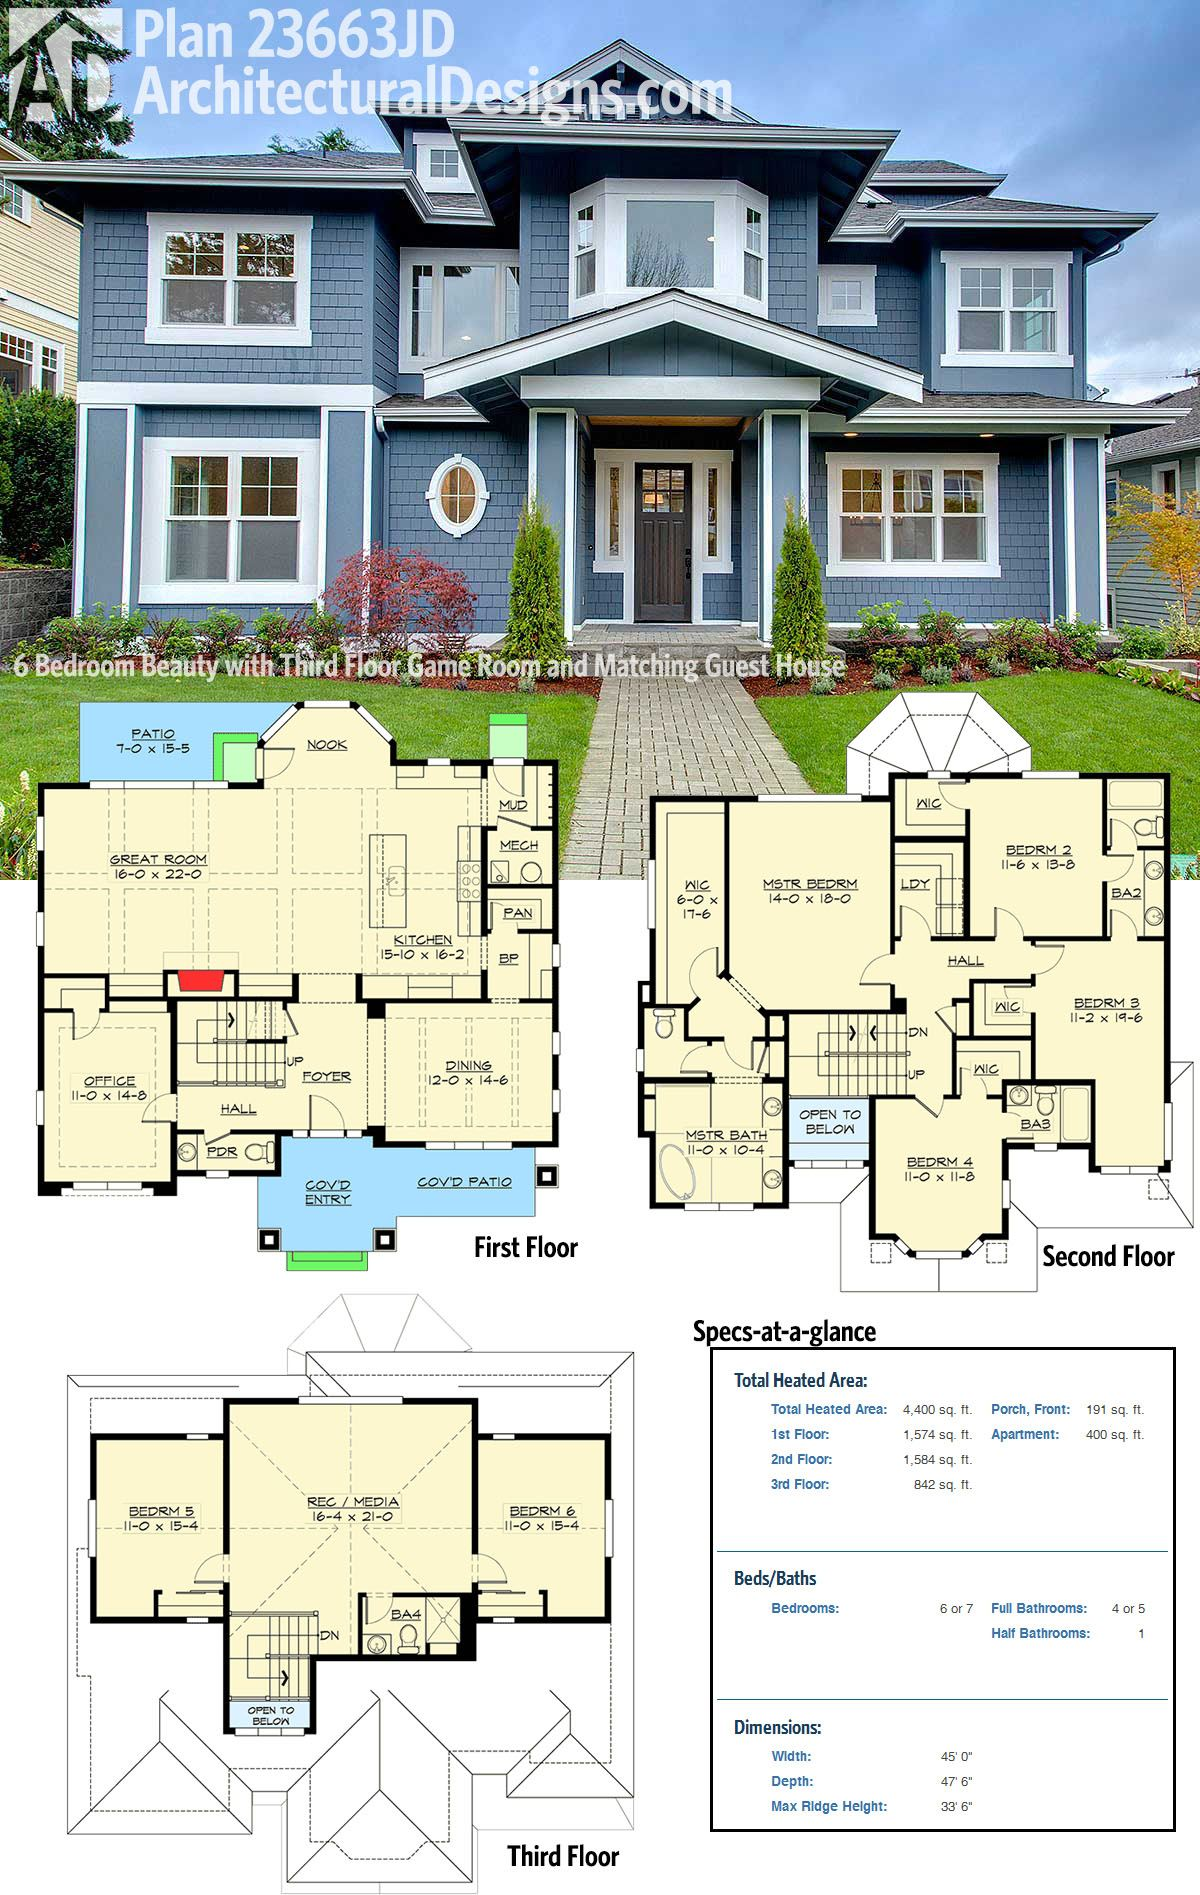 Plan 23663jd 6 bedroom beauty with third floor game room for Floor plan 6 bedroom house